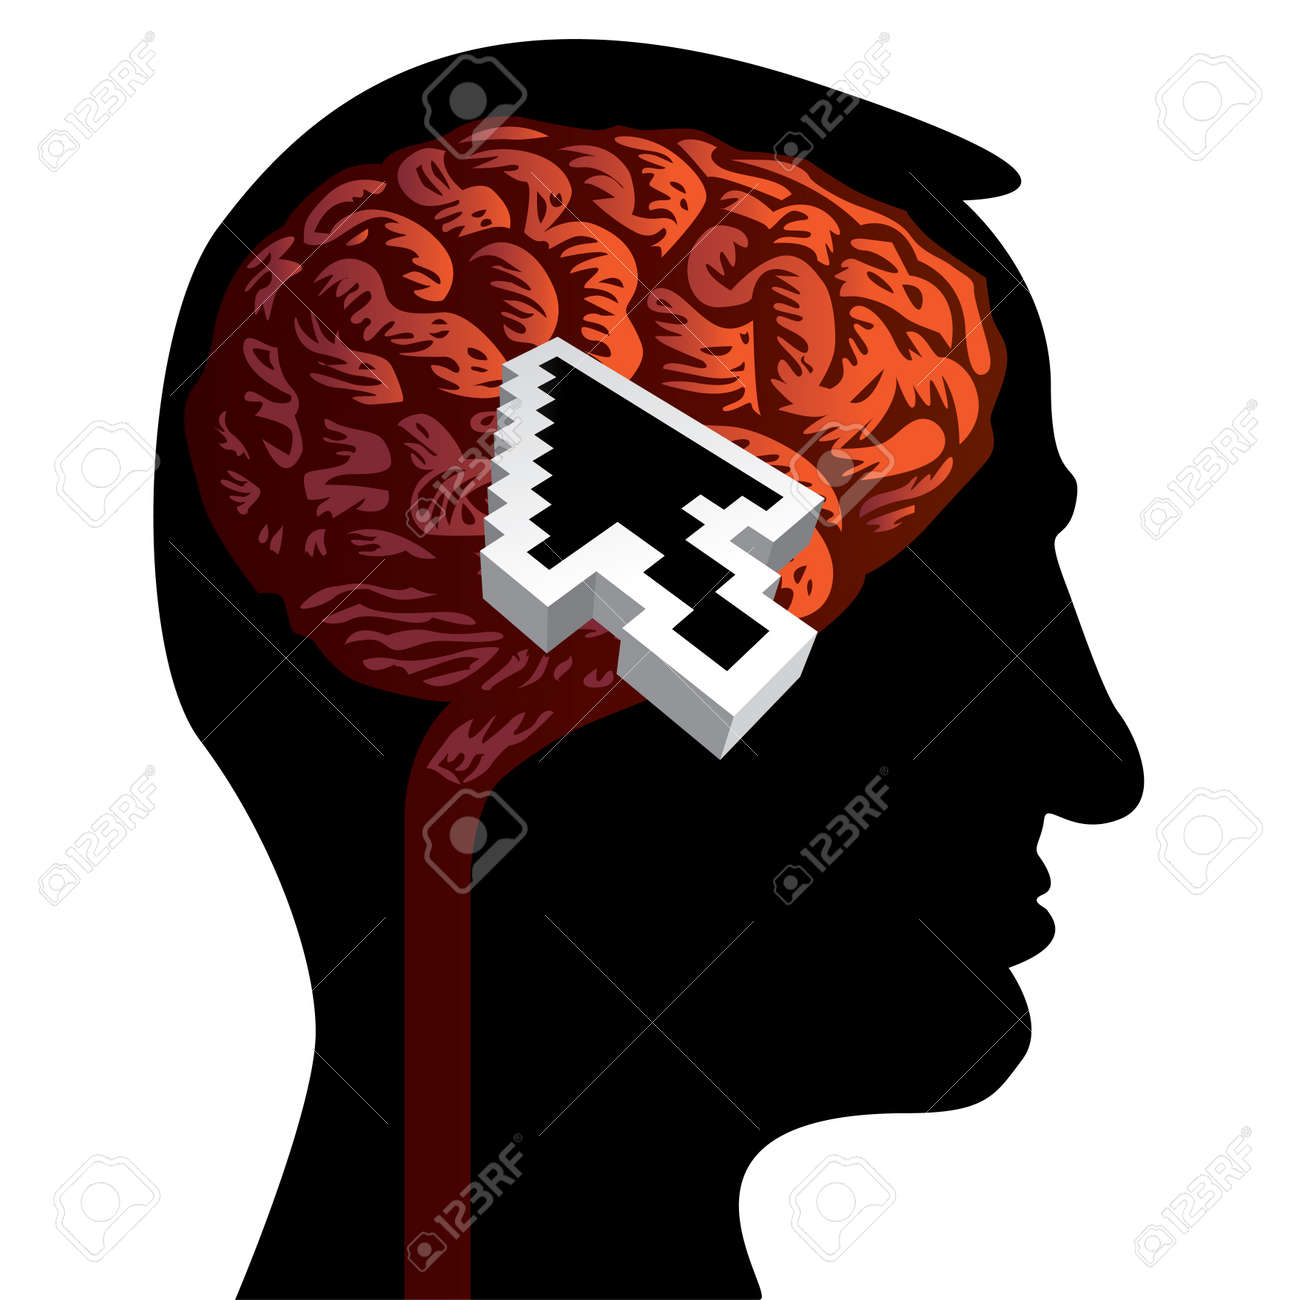 human head with brain isolated illustration Stock Vector - 12453381